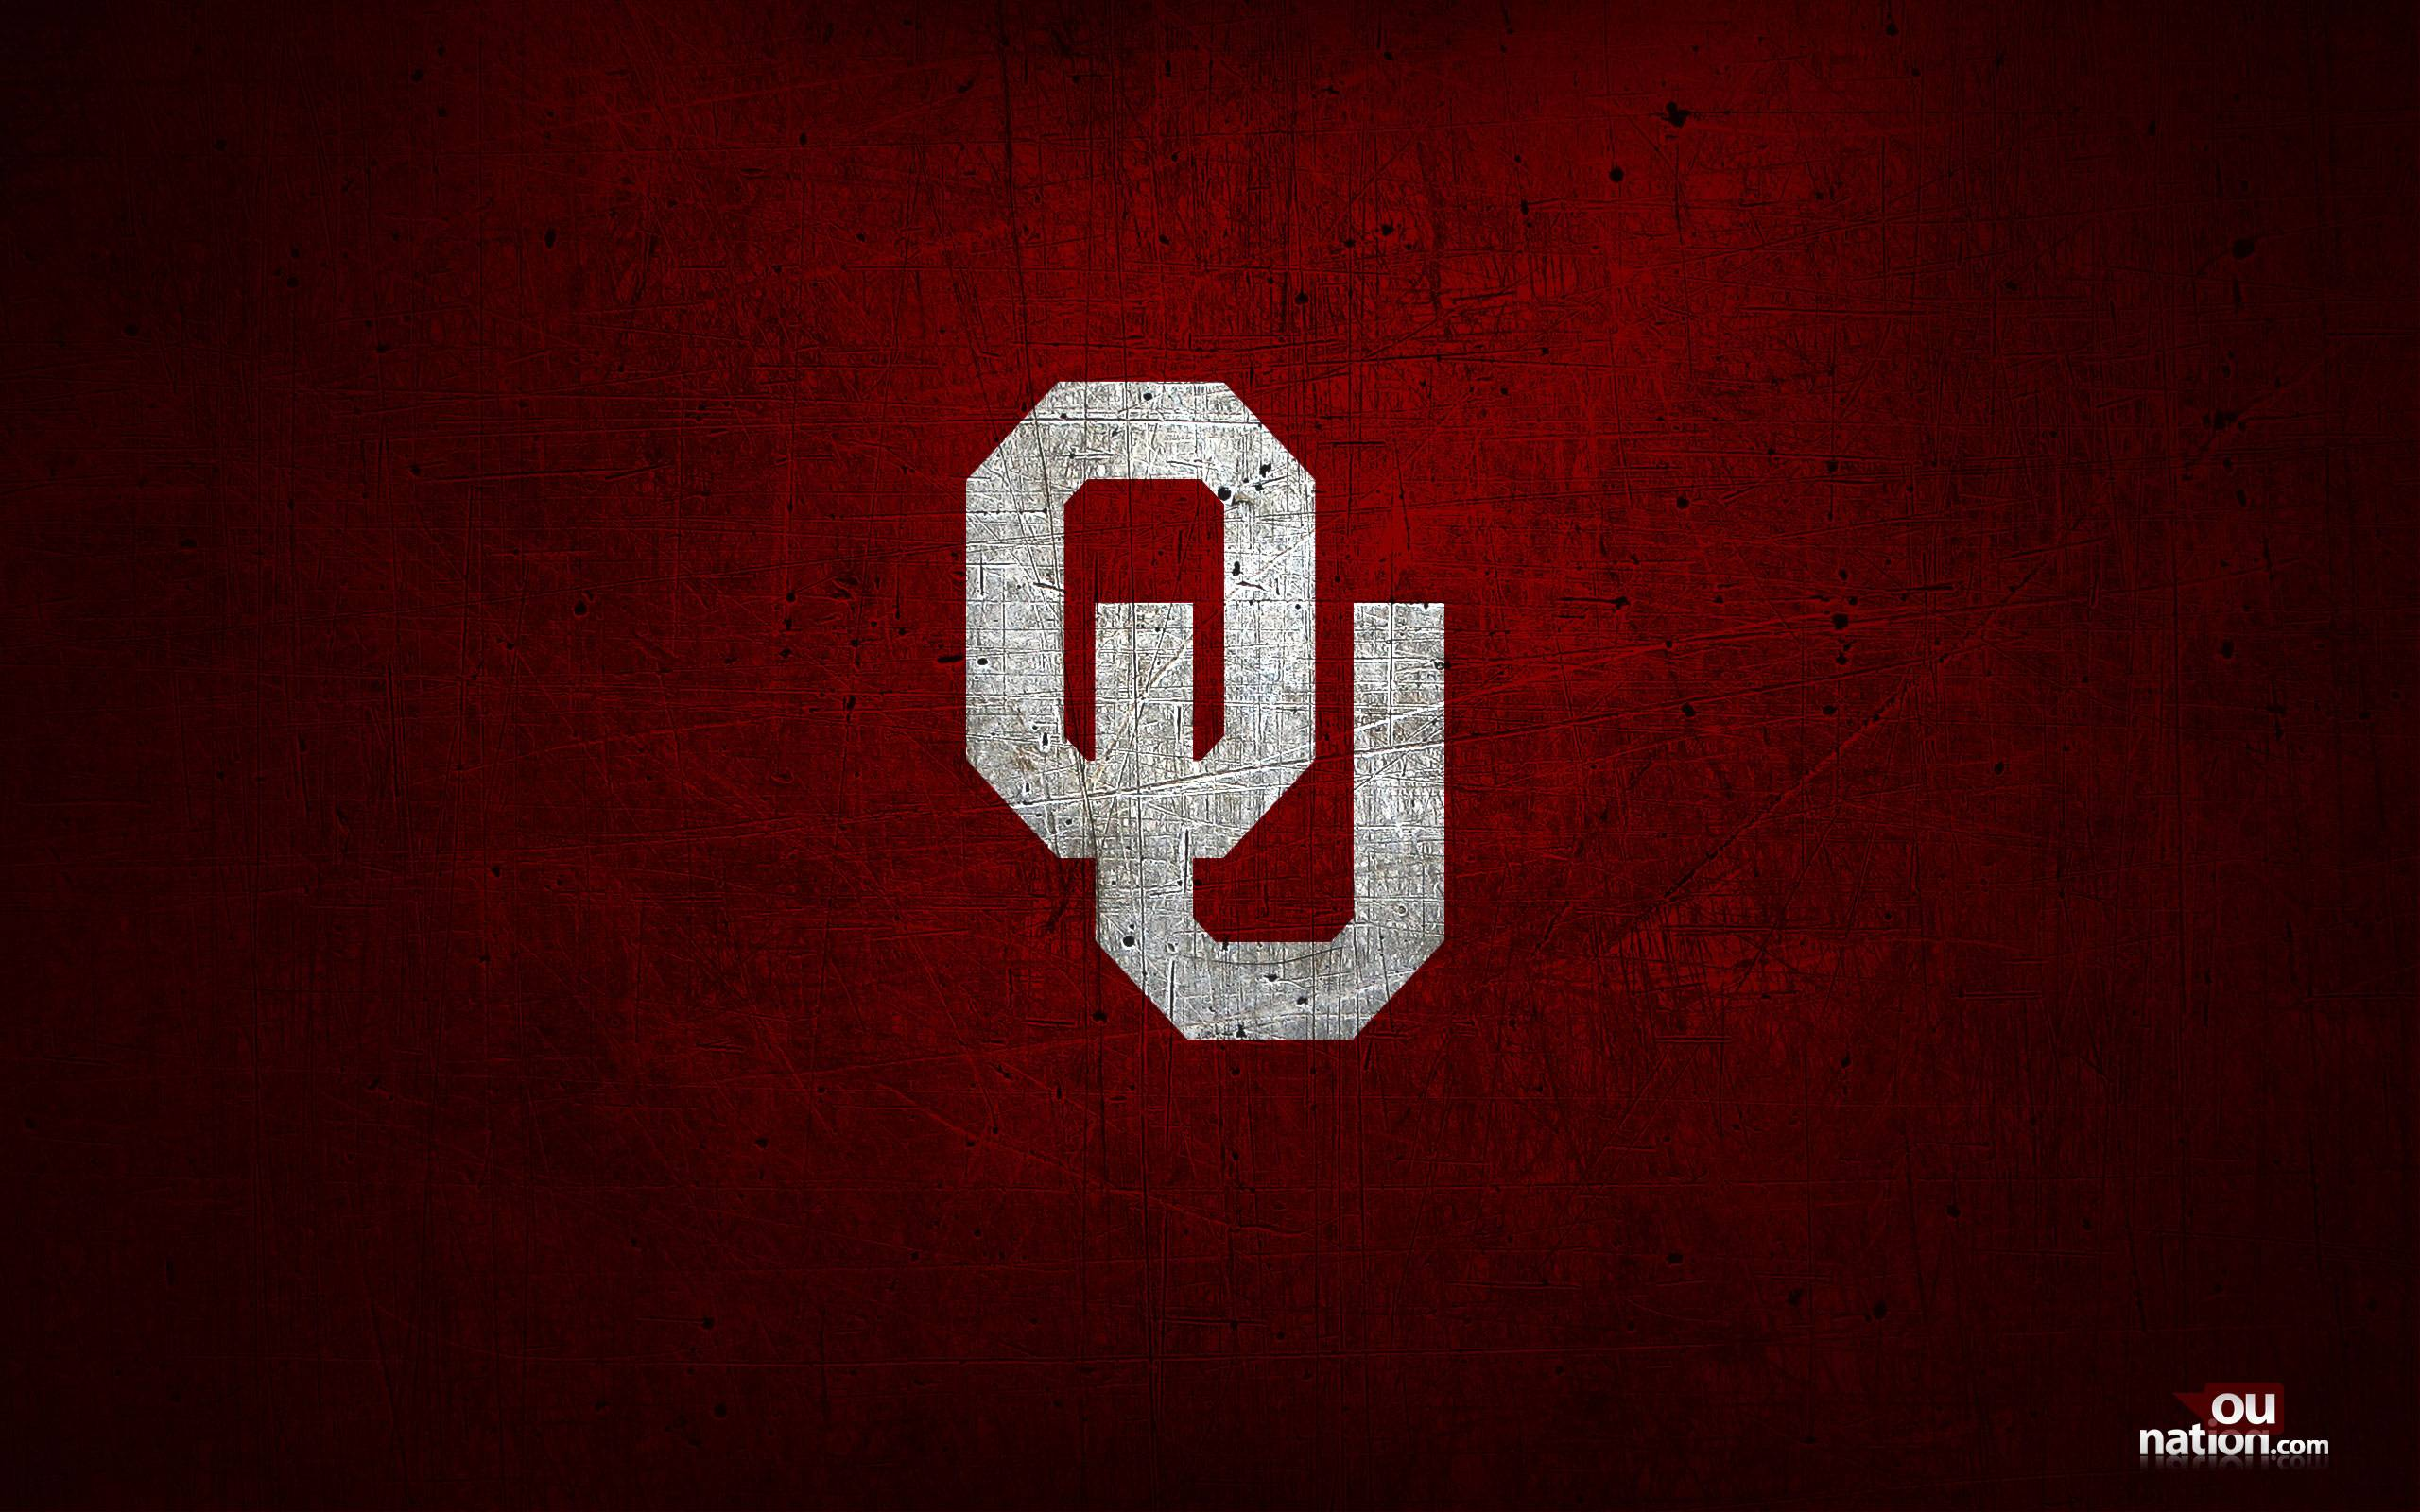 ou sooners wallpaper for laptop - photo #5